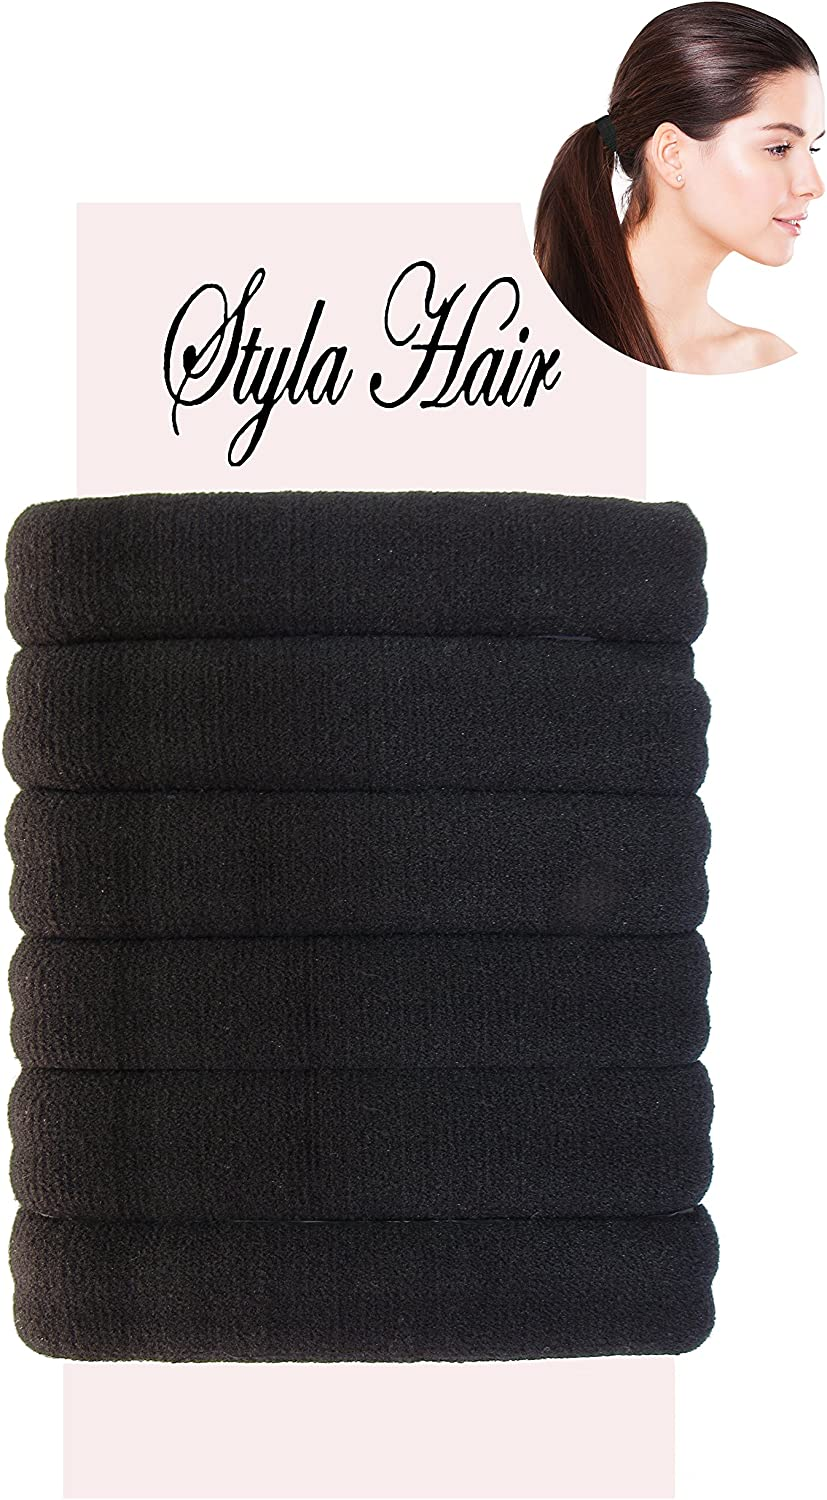 6X THICK SNAG FREE ENDLESS HAIR ELASTIC PONYTAIL BOBBLE HAIR BANDS TOWELING TYPE